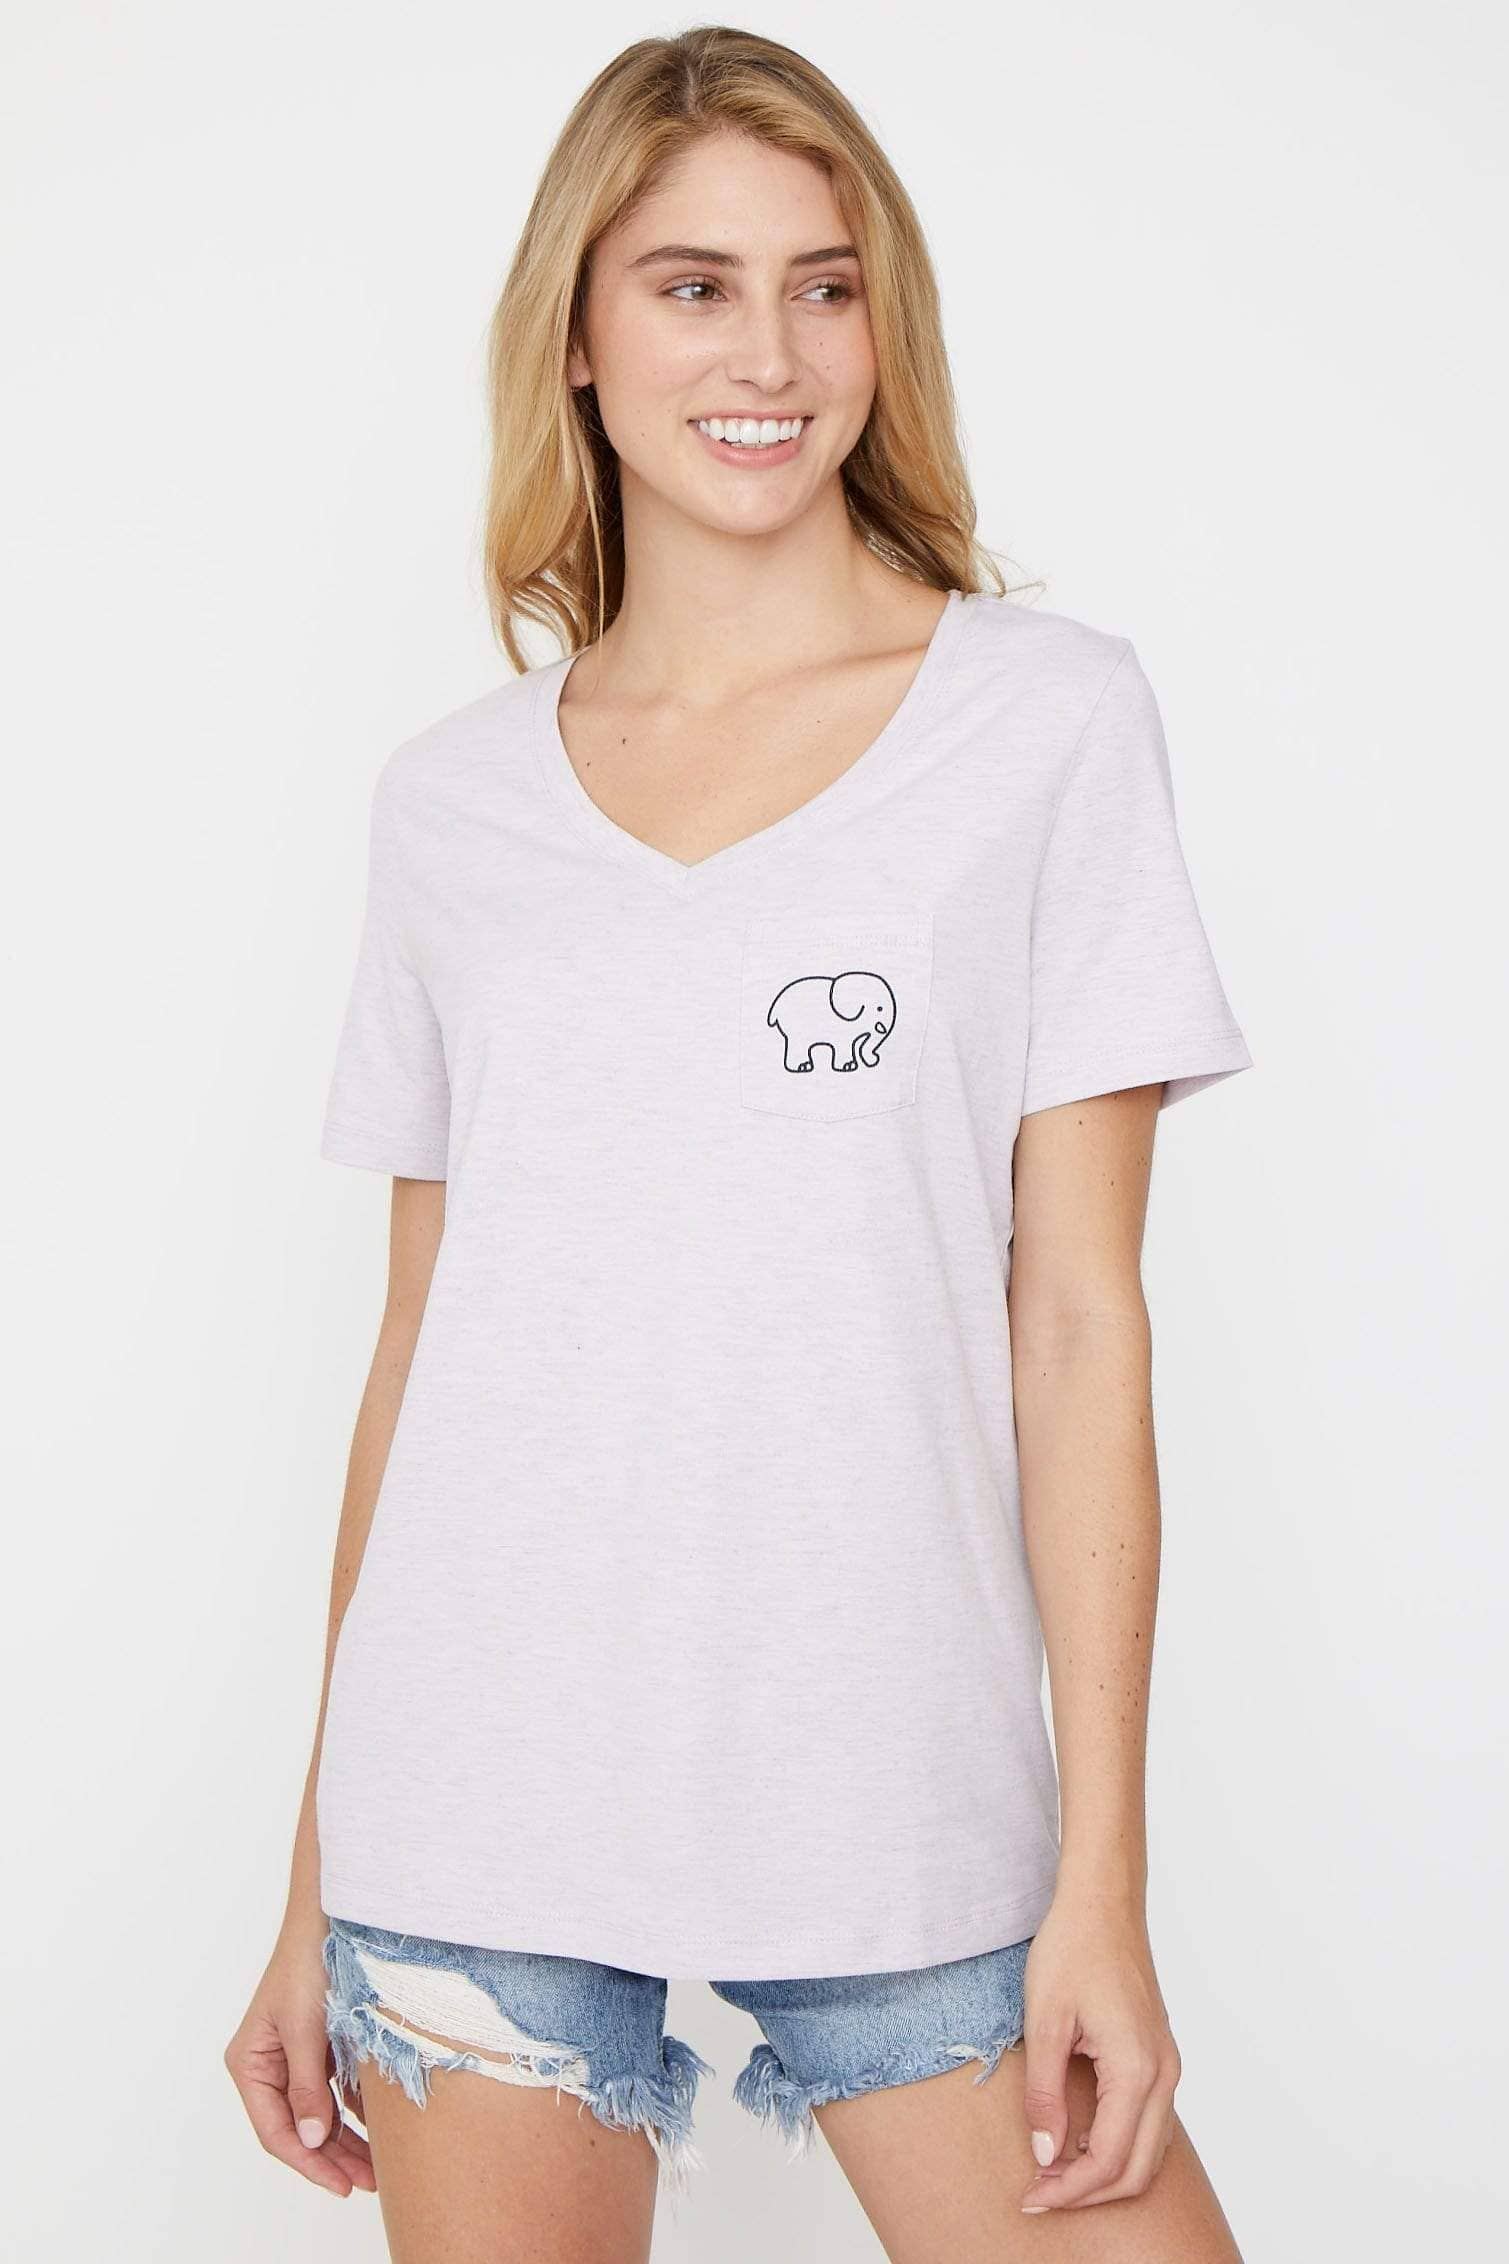 Amethyst Heather V-Neck Tee - Ivory Ella - Women's Short Sleeve Tees